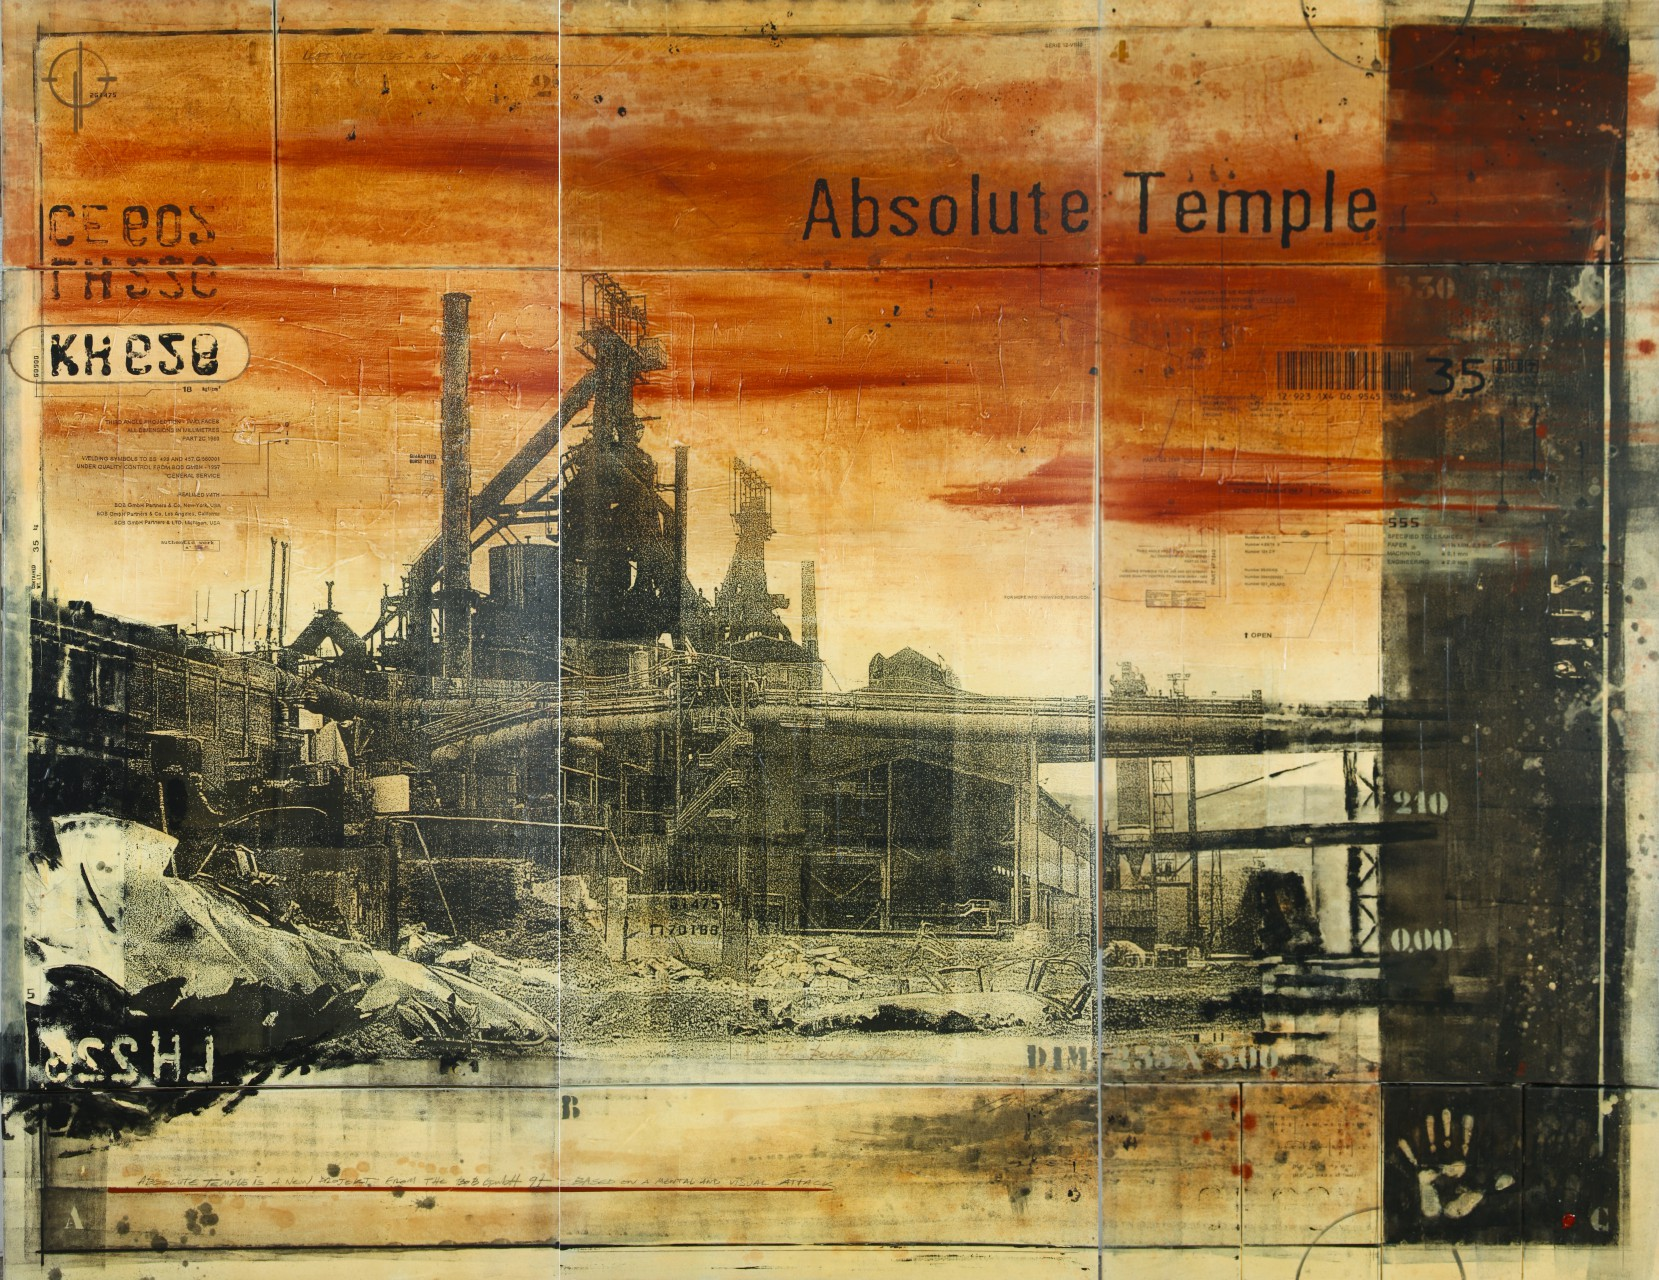 Absolute Temple - Esch-sur-Alzette (L) - collage photo, huile, acrylique sur toile - 235 x 300 cm - 1997